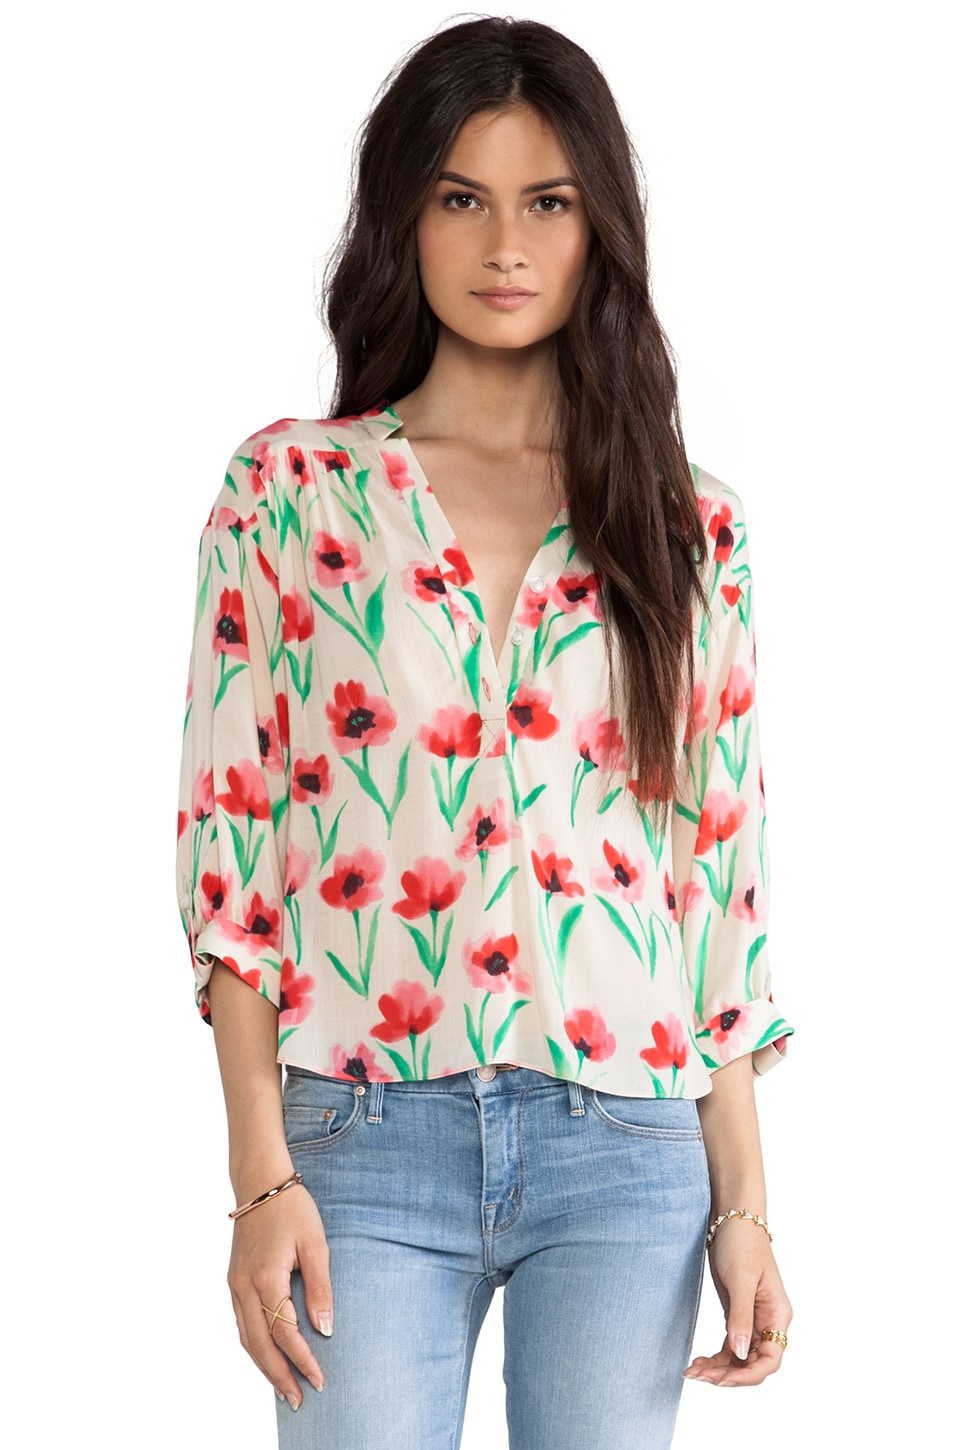 MILLY Poppy Print Camilla Sleeve Top in Multi